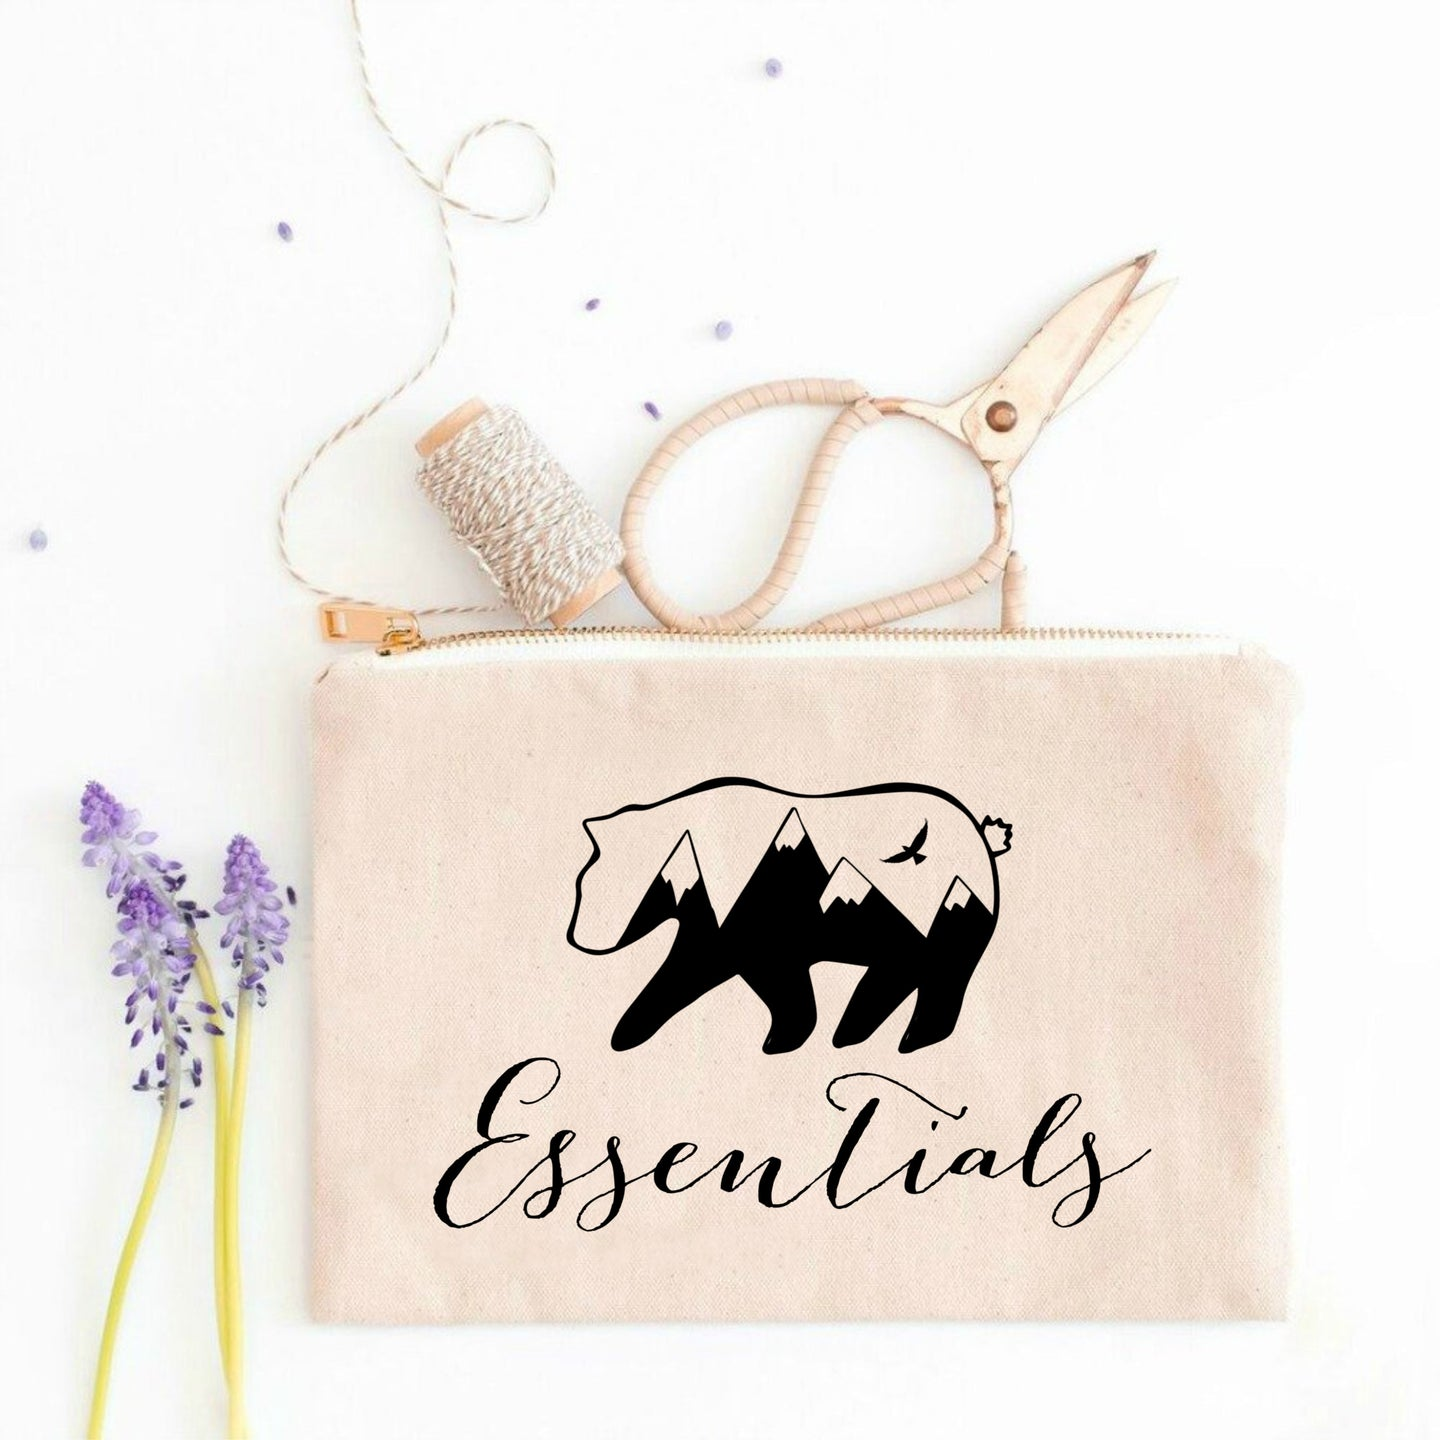 Bear Essentials boho natural cotton canvas zippered cosmetic makeup bag from Modern Trail